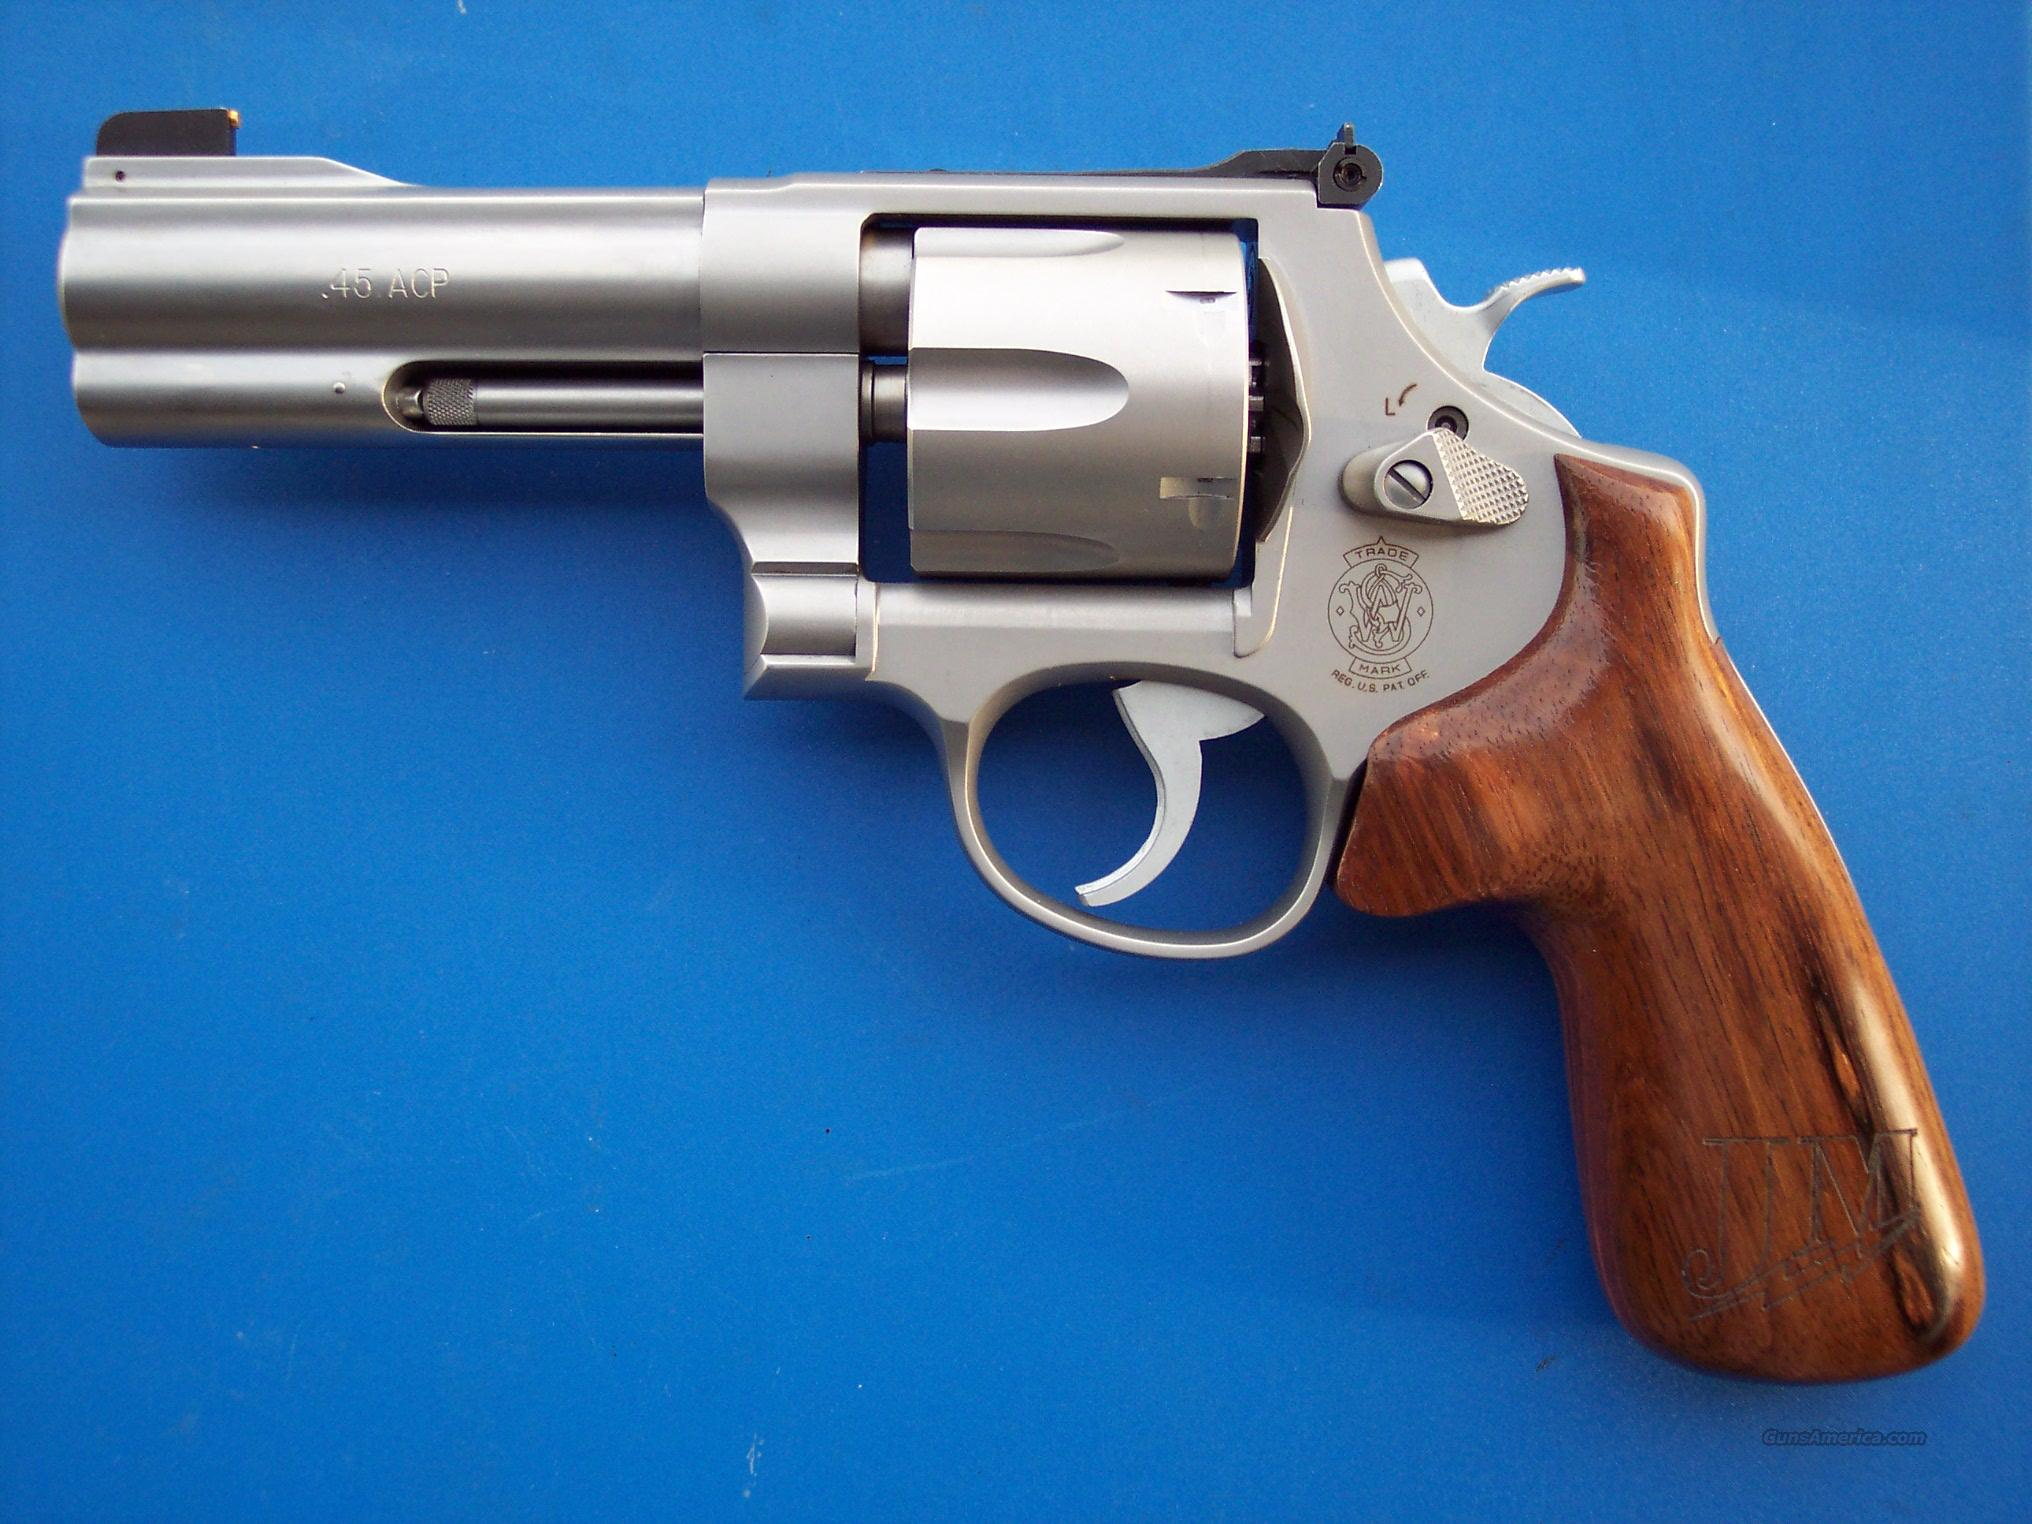 Smith & Wesson 625 Champion Series .45 acp   Guns > Pistols > Smith & Wesson Revolvers > Full Frame Revolver